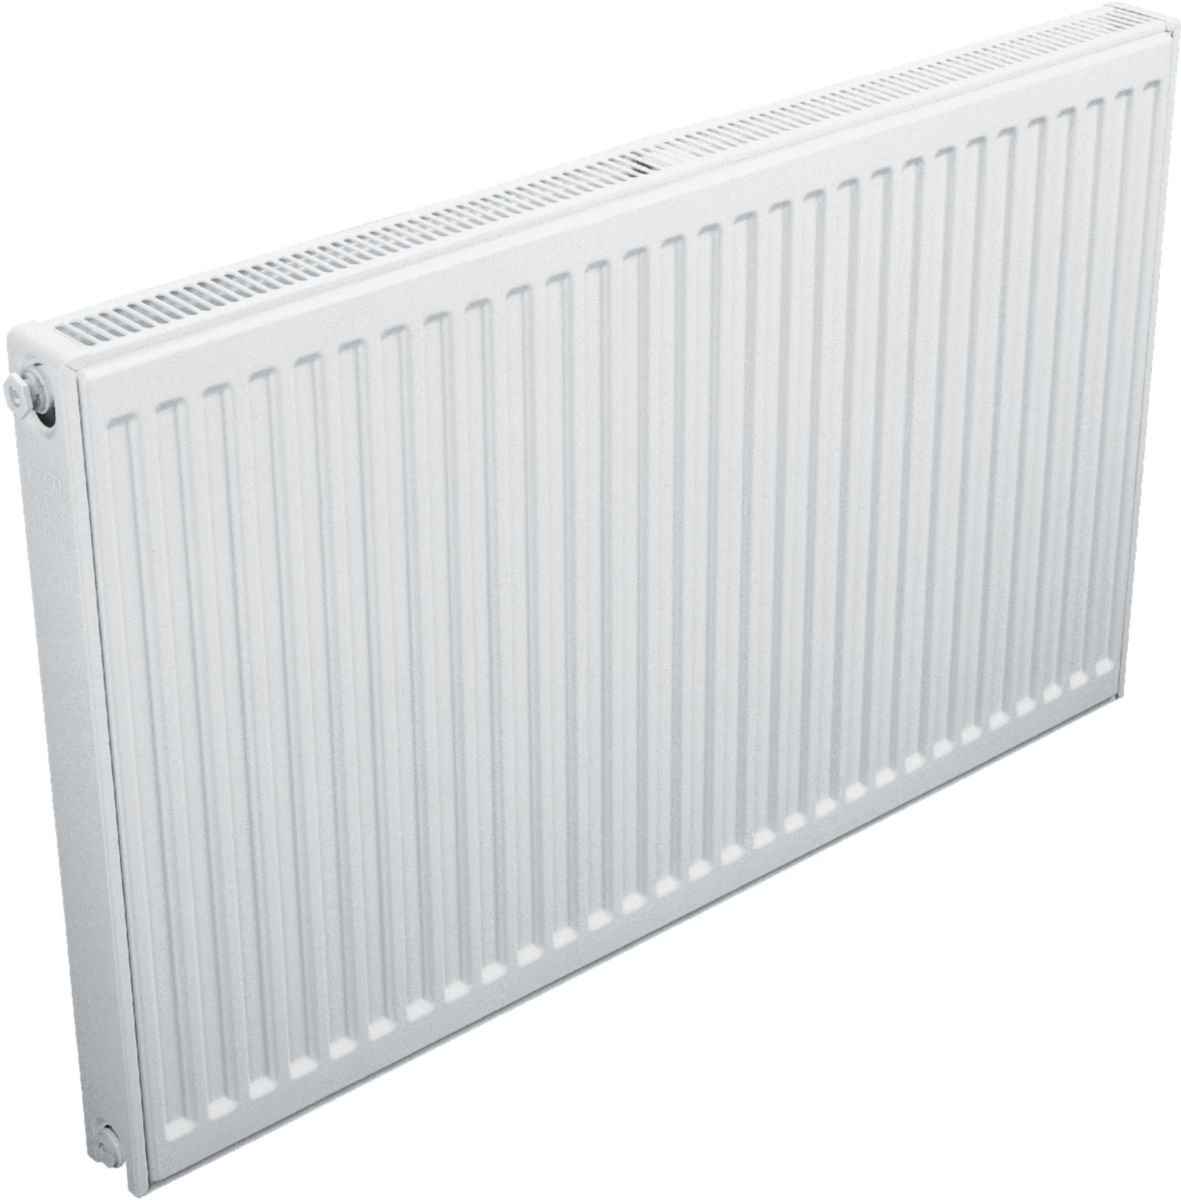 altech radiateur panneau altech 4 connexions horizontal. Black Bedroom Furniture Sets. Home Design Ideas